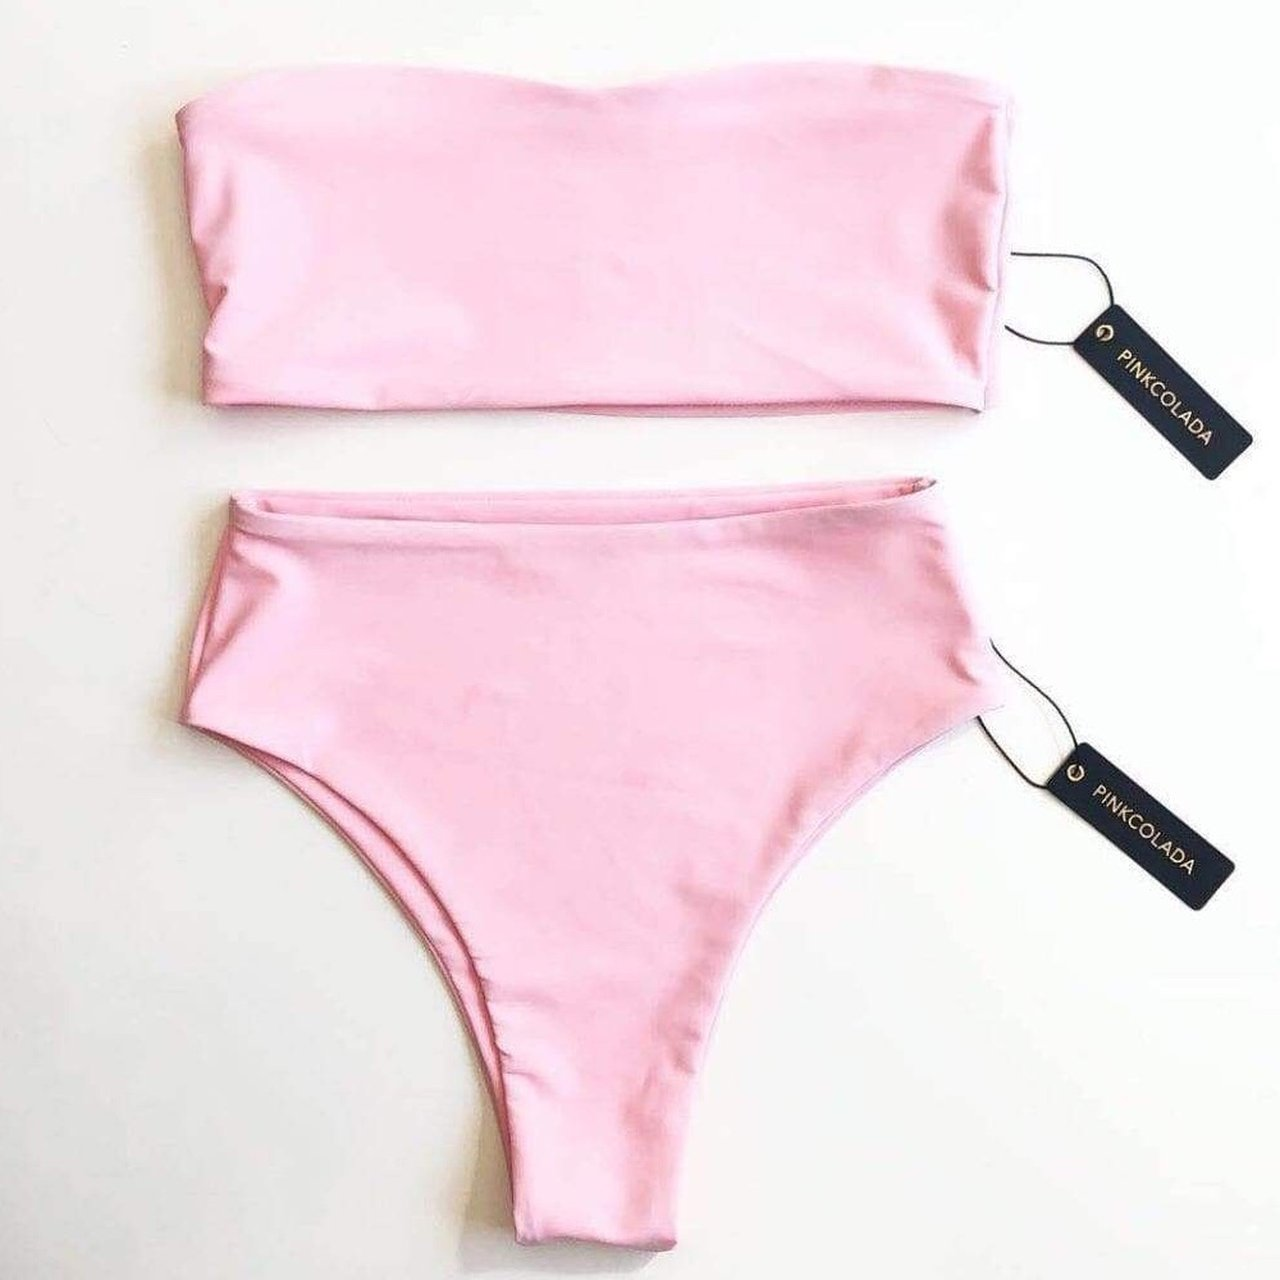 9fa52fbd28 Pink colada high waisted bikini bottoms with matching top💕 depop jpg  1280x1280 Pink colada swimwear